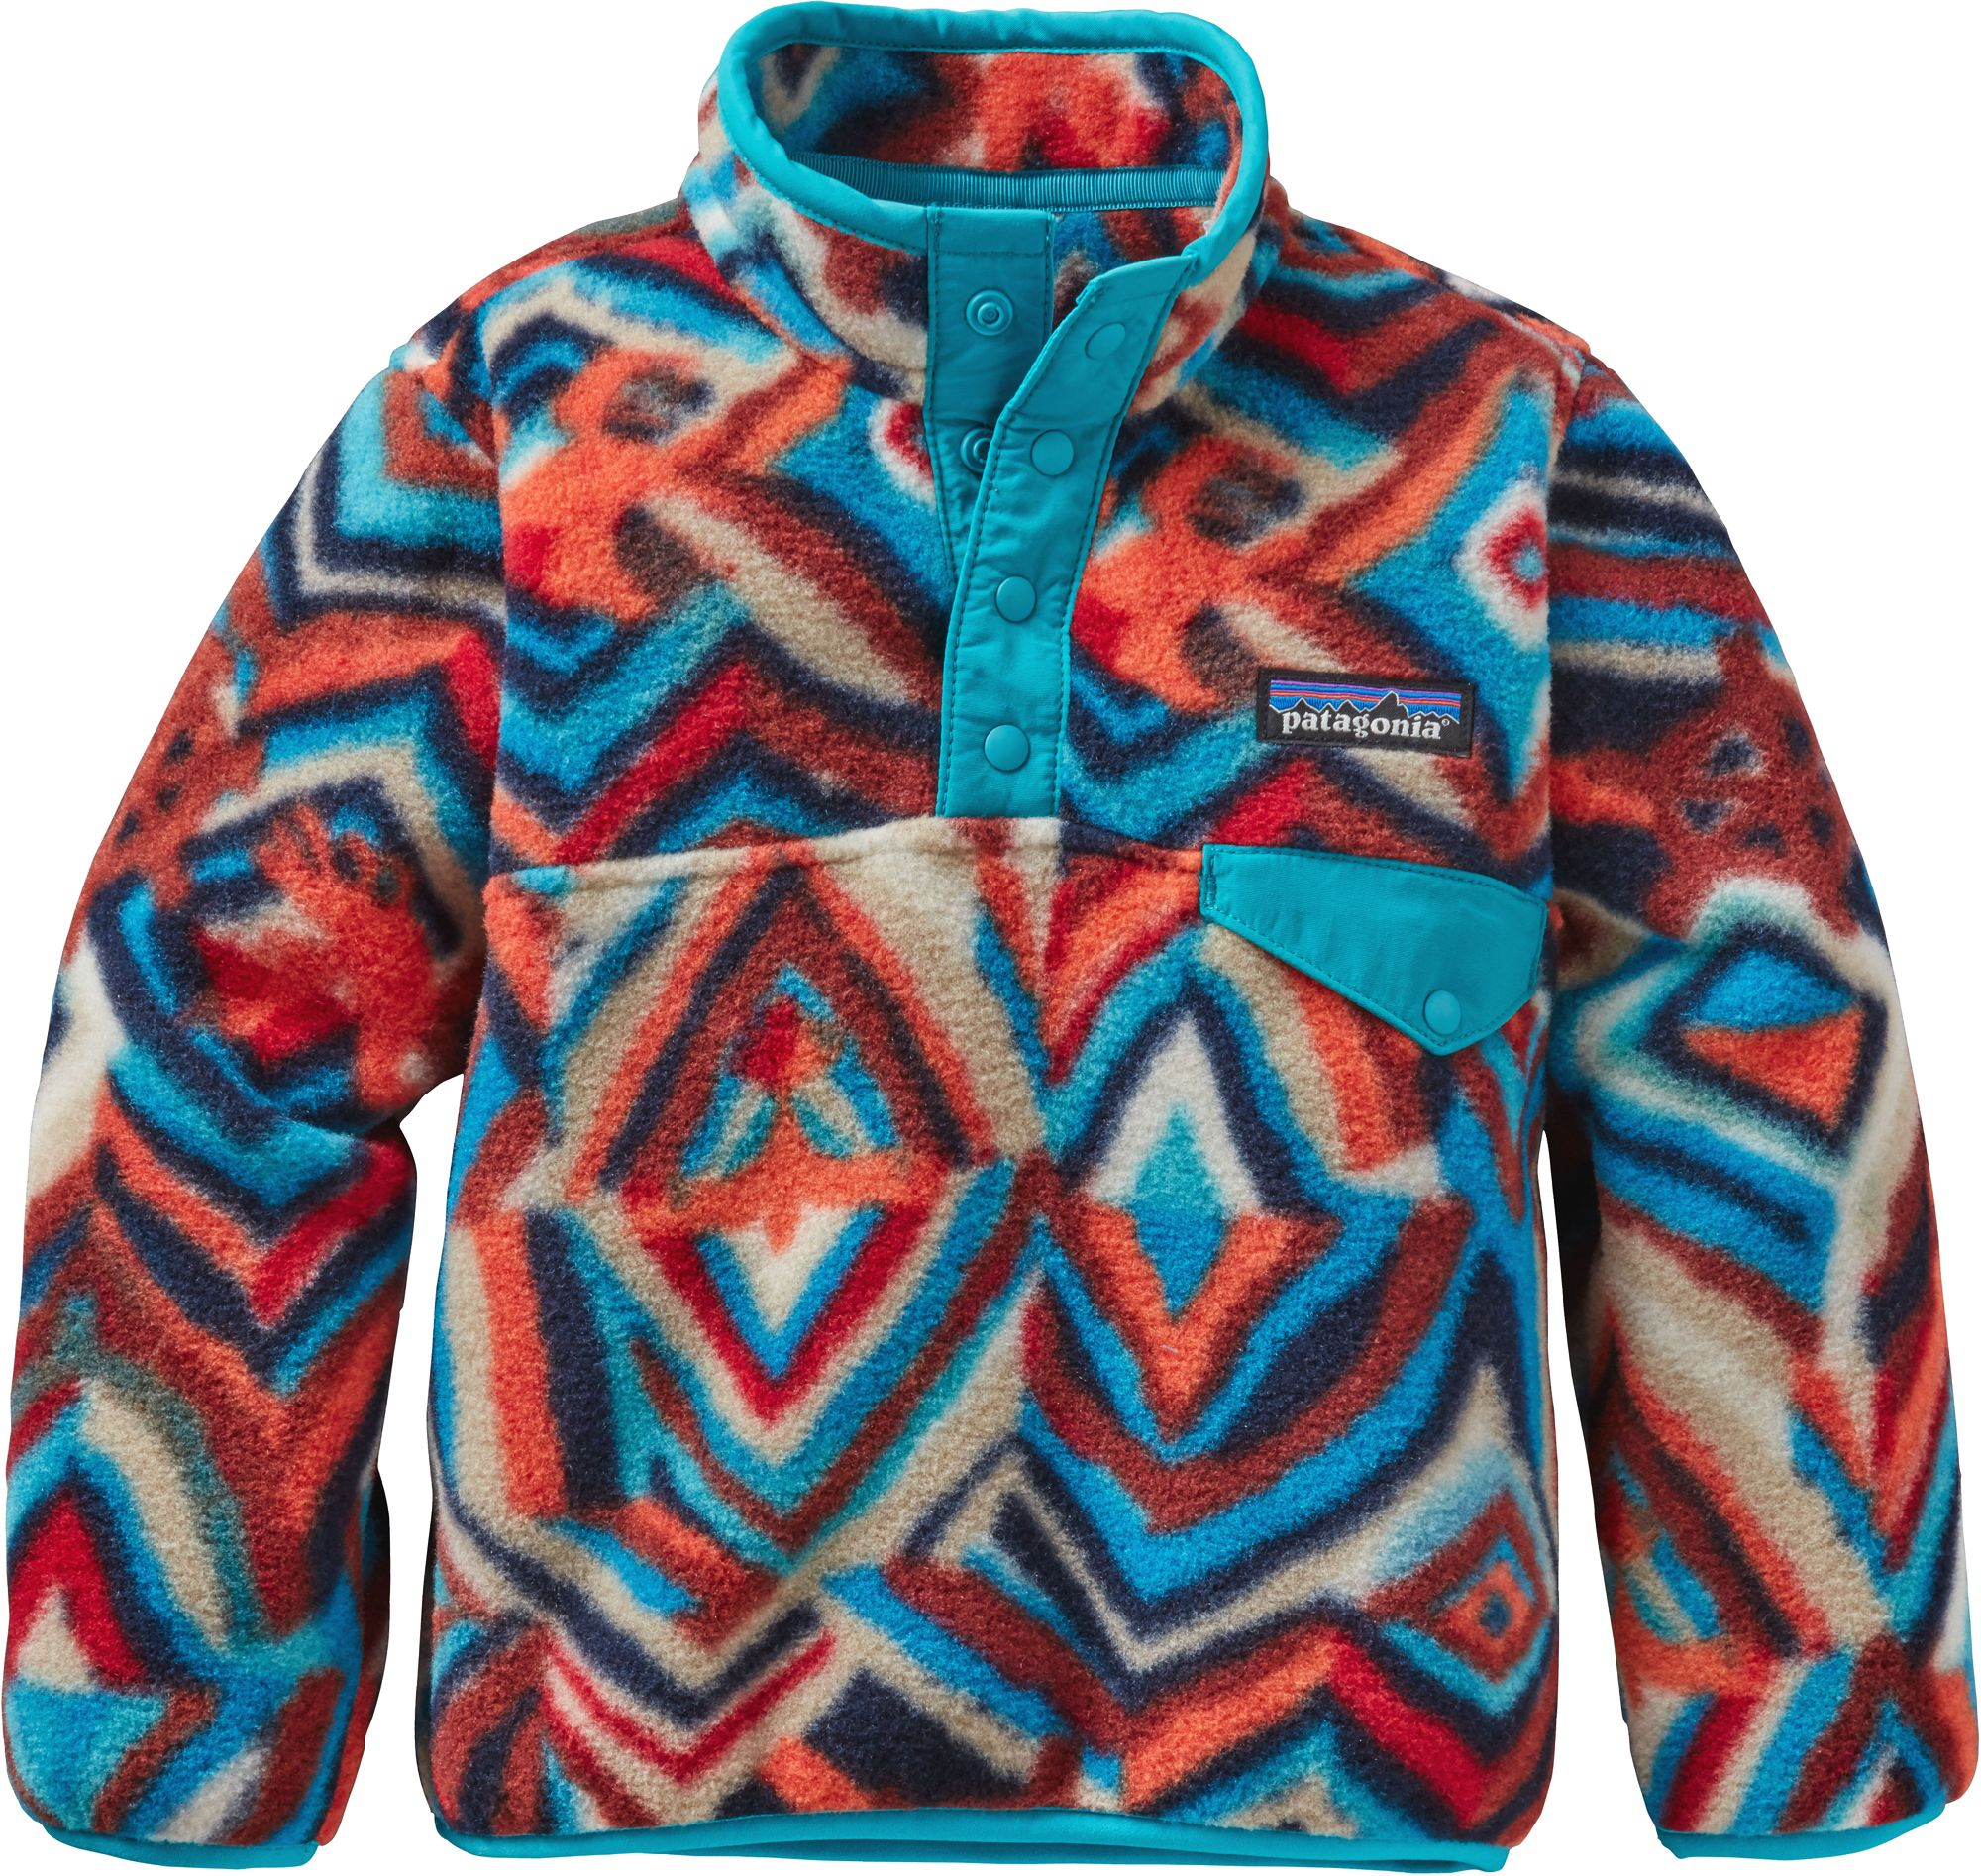 Toddler & Baby Fleece Jackets | DICK'S Sporting Goods